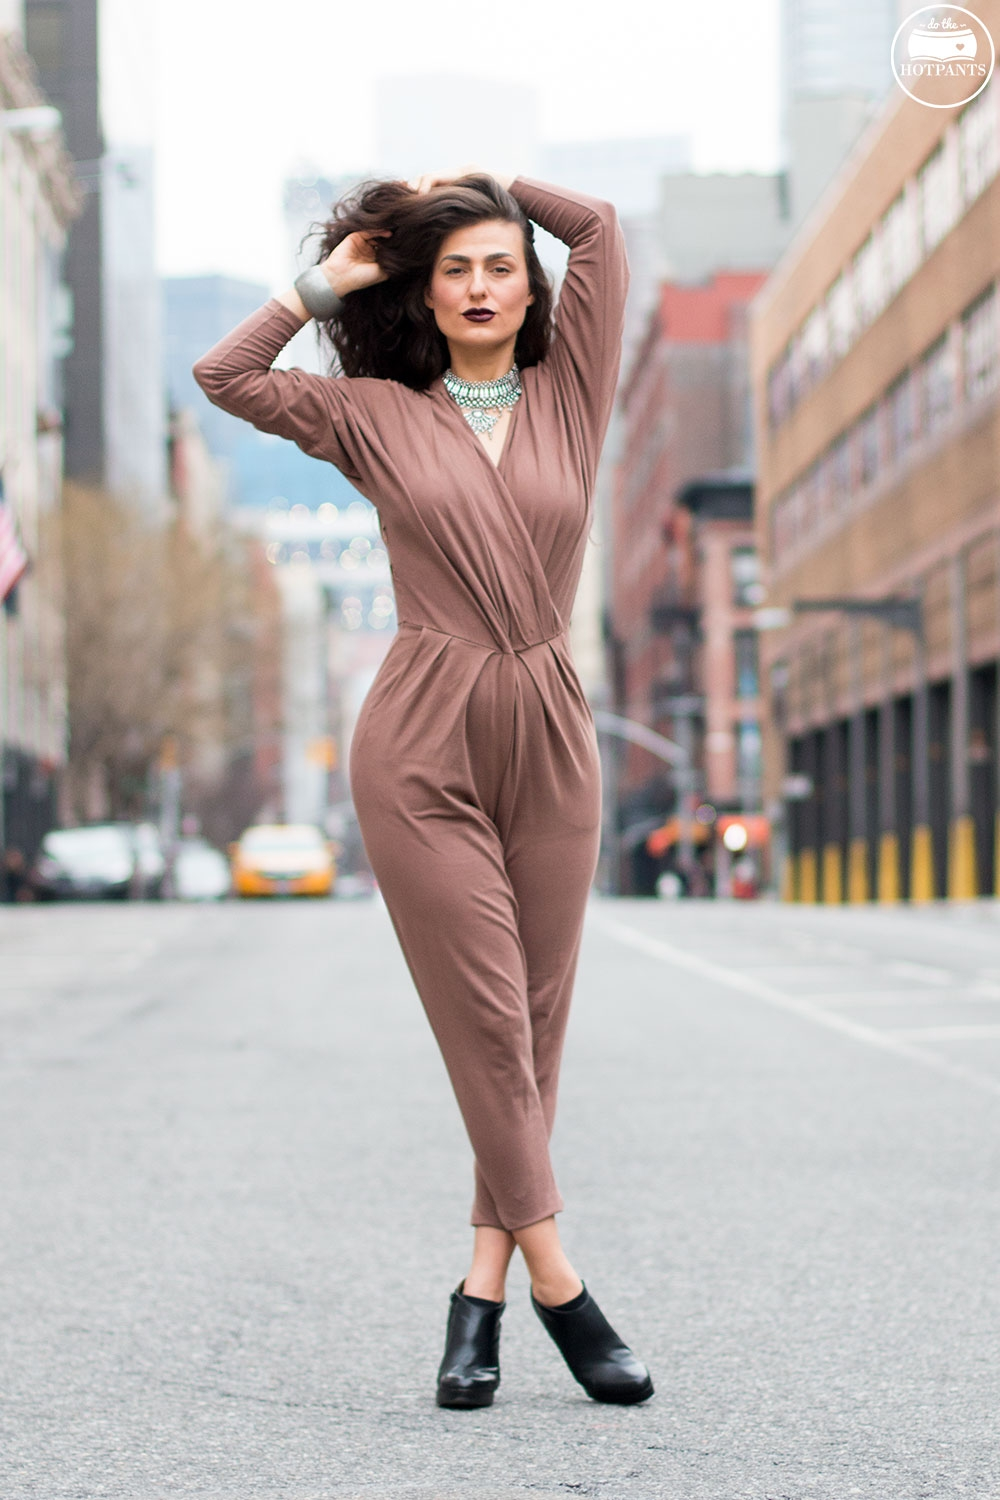 Do The Hotpants Dana Suchow Curvy Woman Jumpsuit Nude Outfit Winter Fashion Long Wavy Hair Dark Lipstick IMG_7052